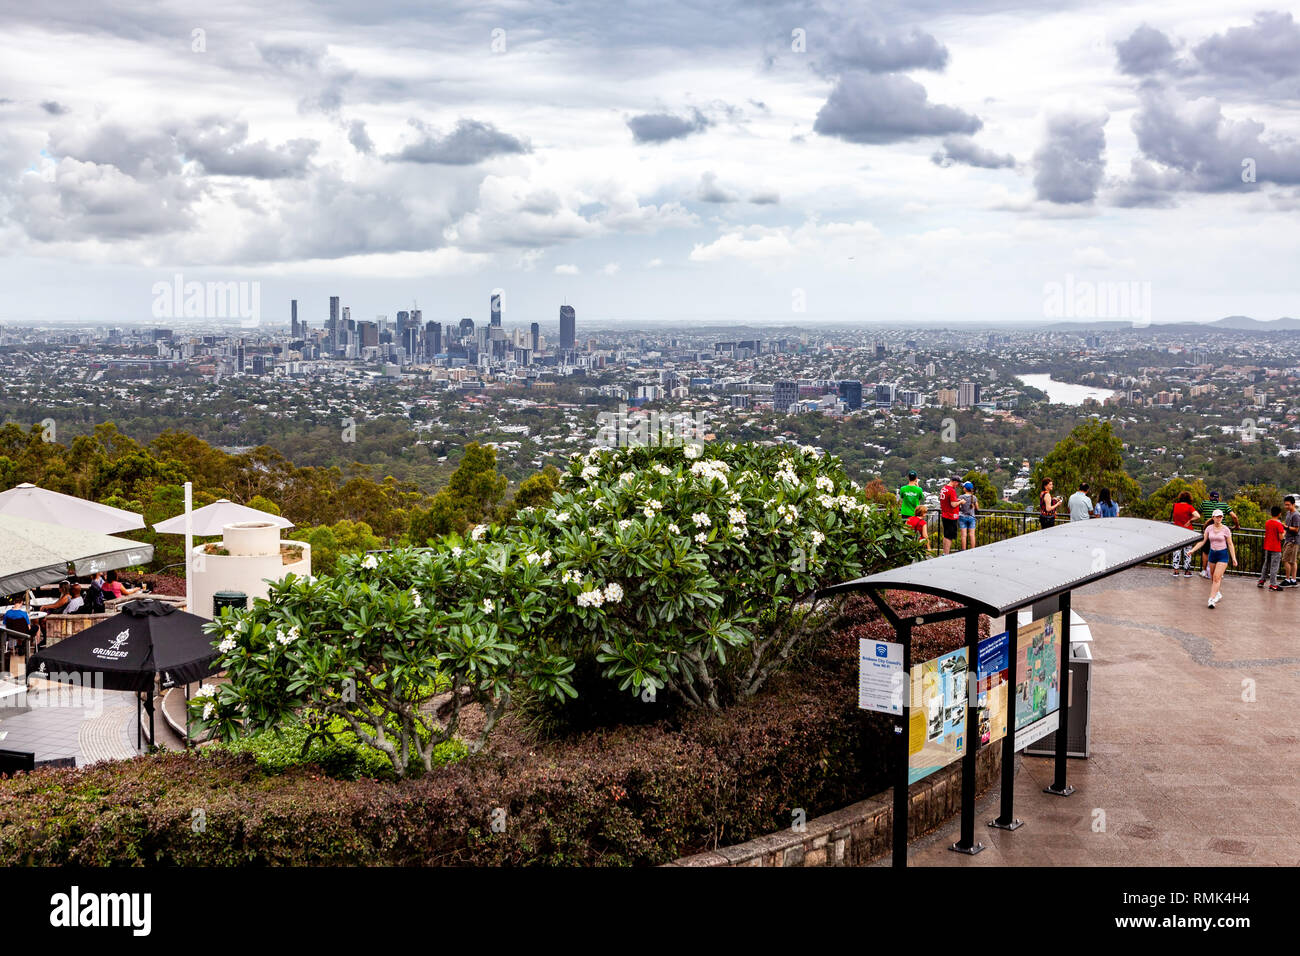 BRISBANE, Australia - January 9 2019: Tourists viewing Brisbane city skyline from Mount Coot-tha lookout - Stock Image